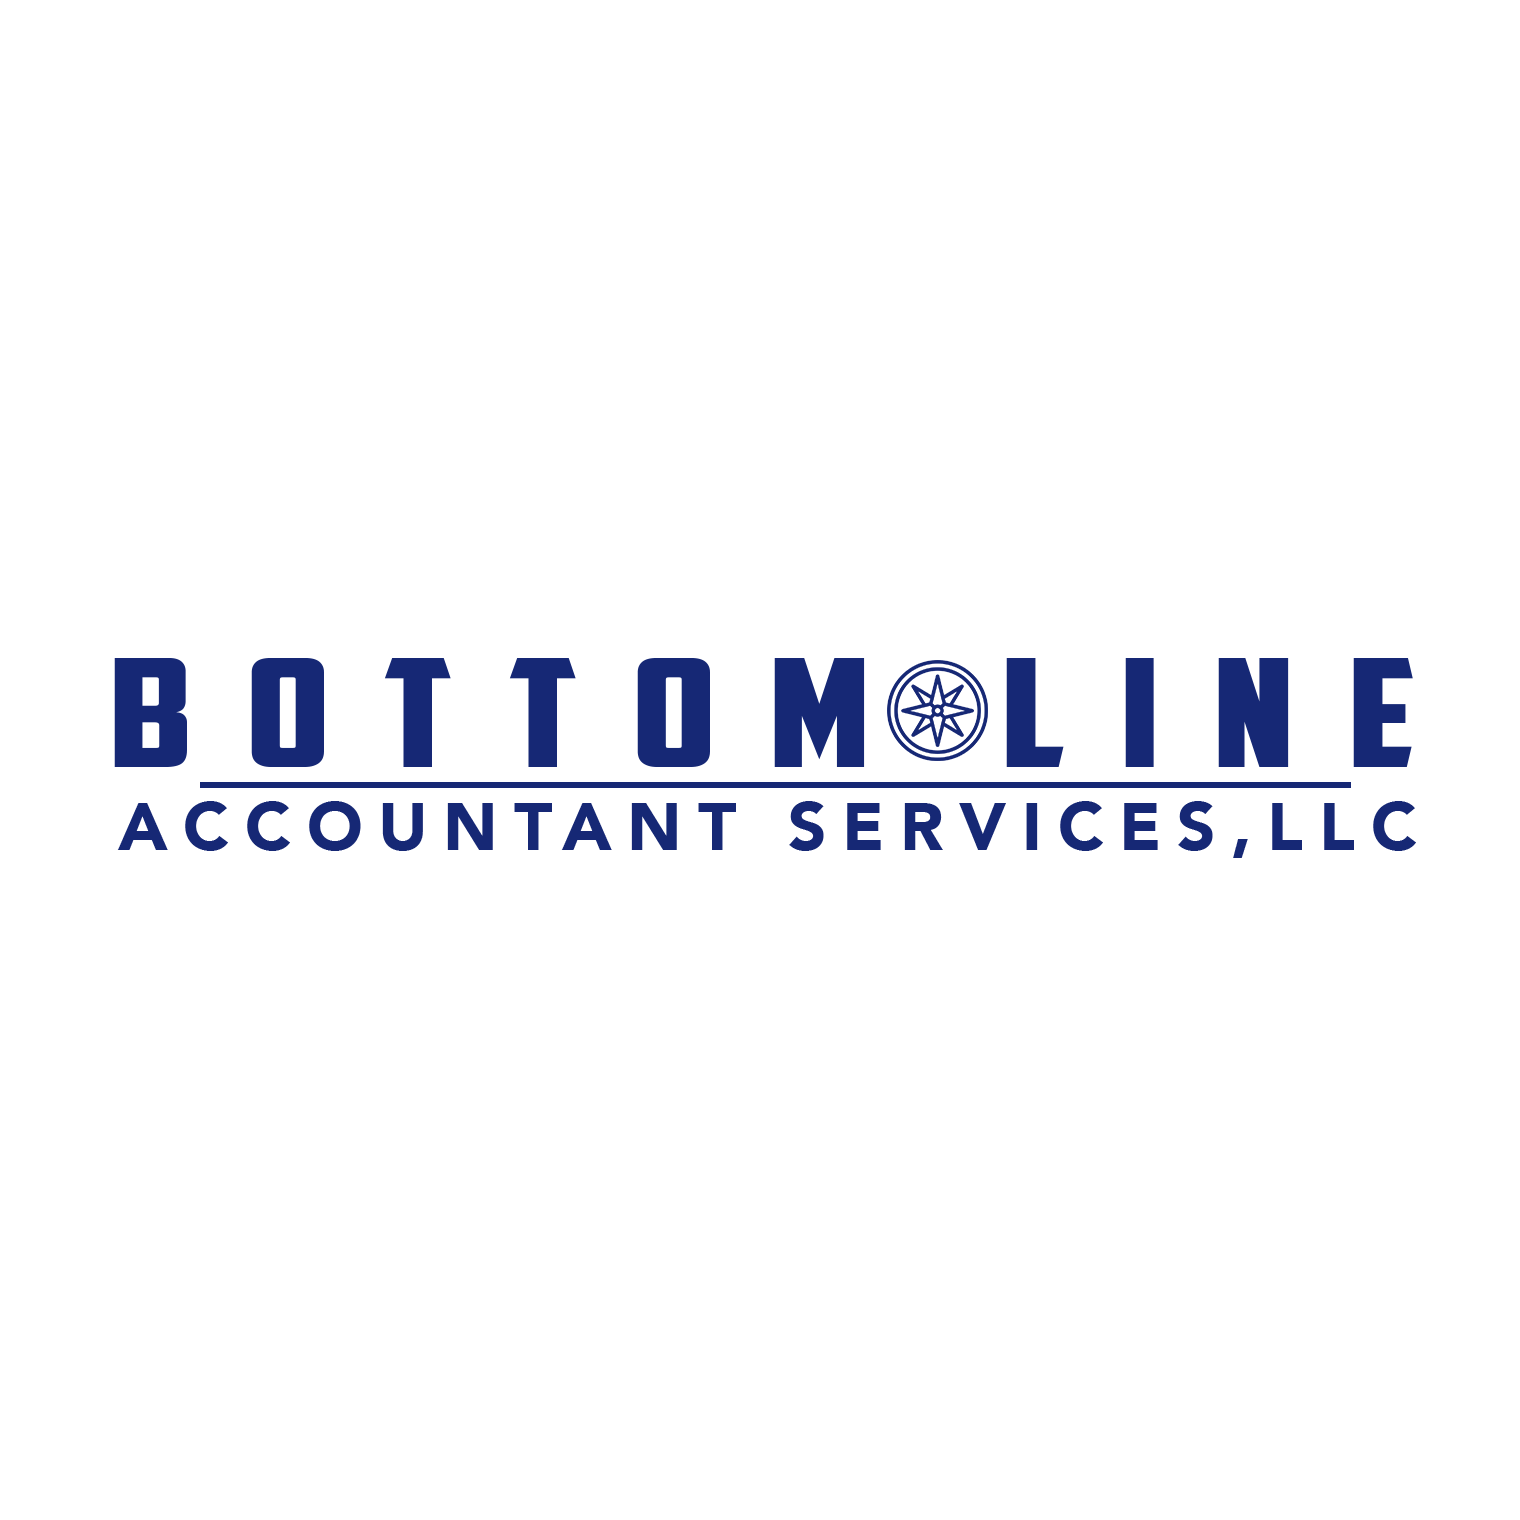 Bottom Line Accounting Services